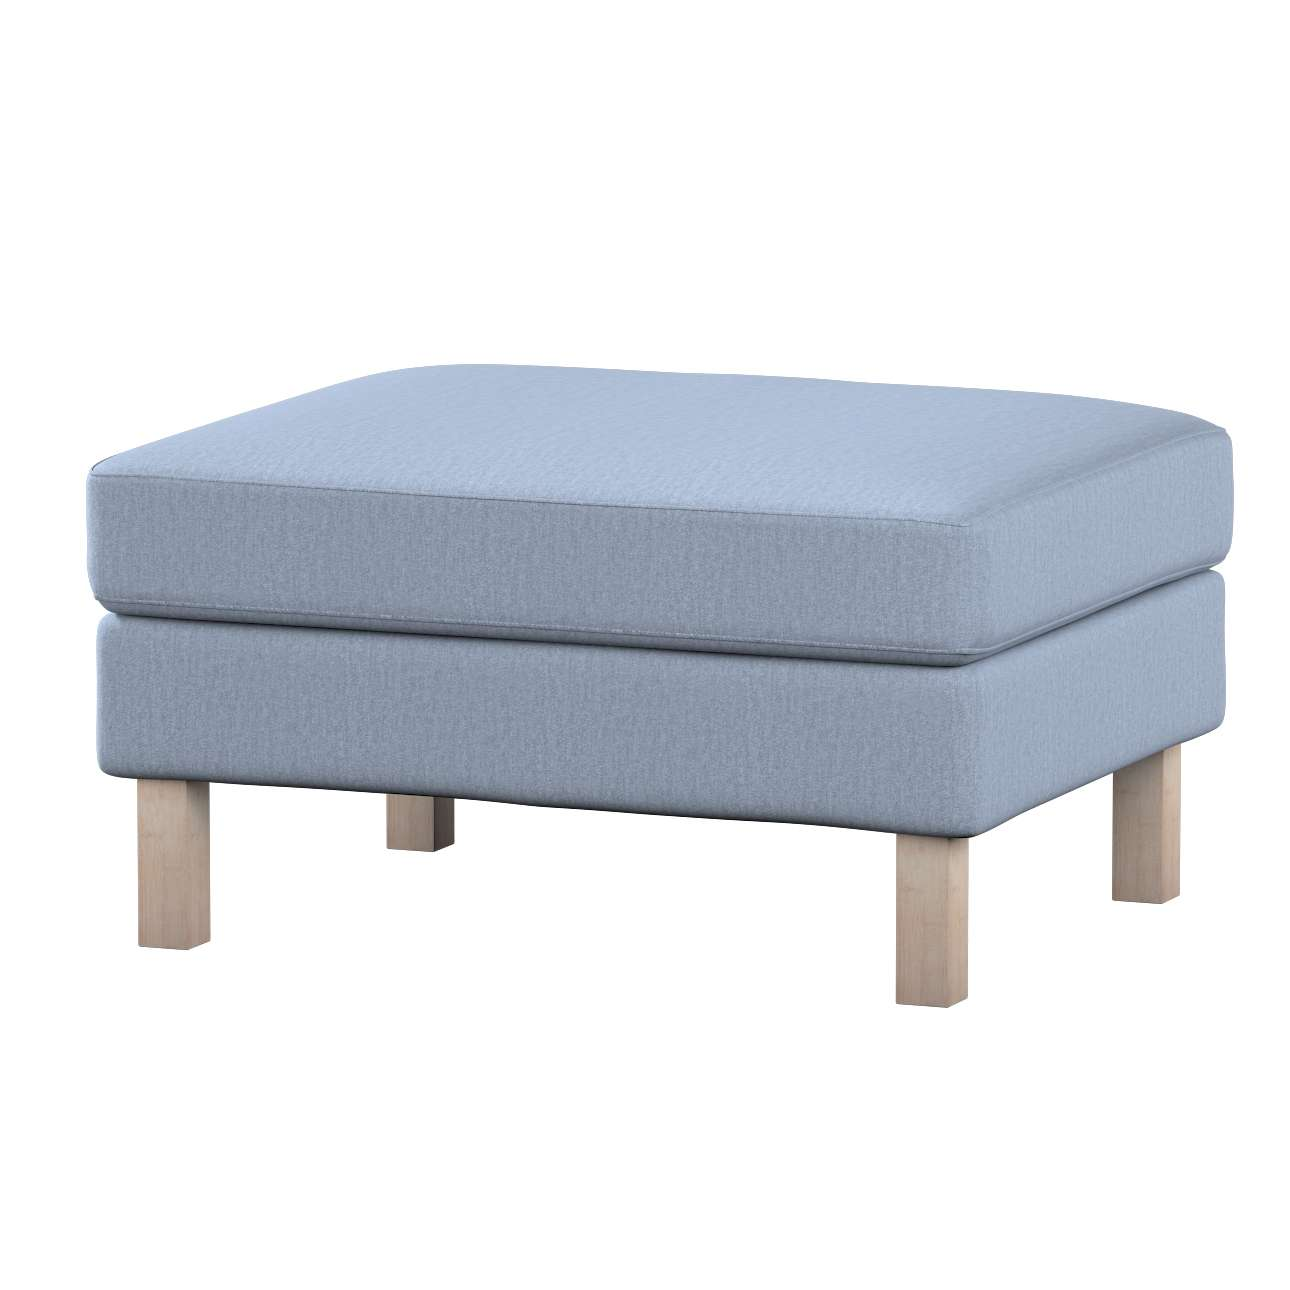 Karlstad footstool cover Karlstad footstool cover in collection Chenille, fabric: 702-13